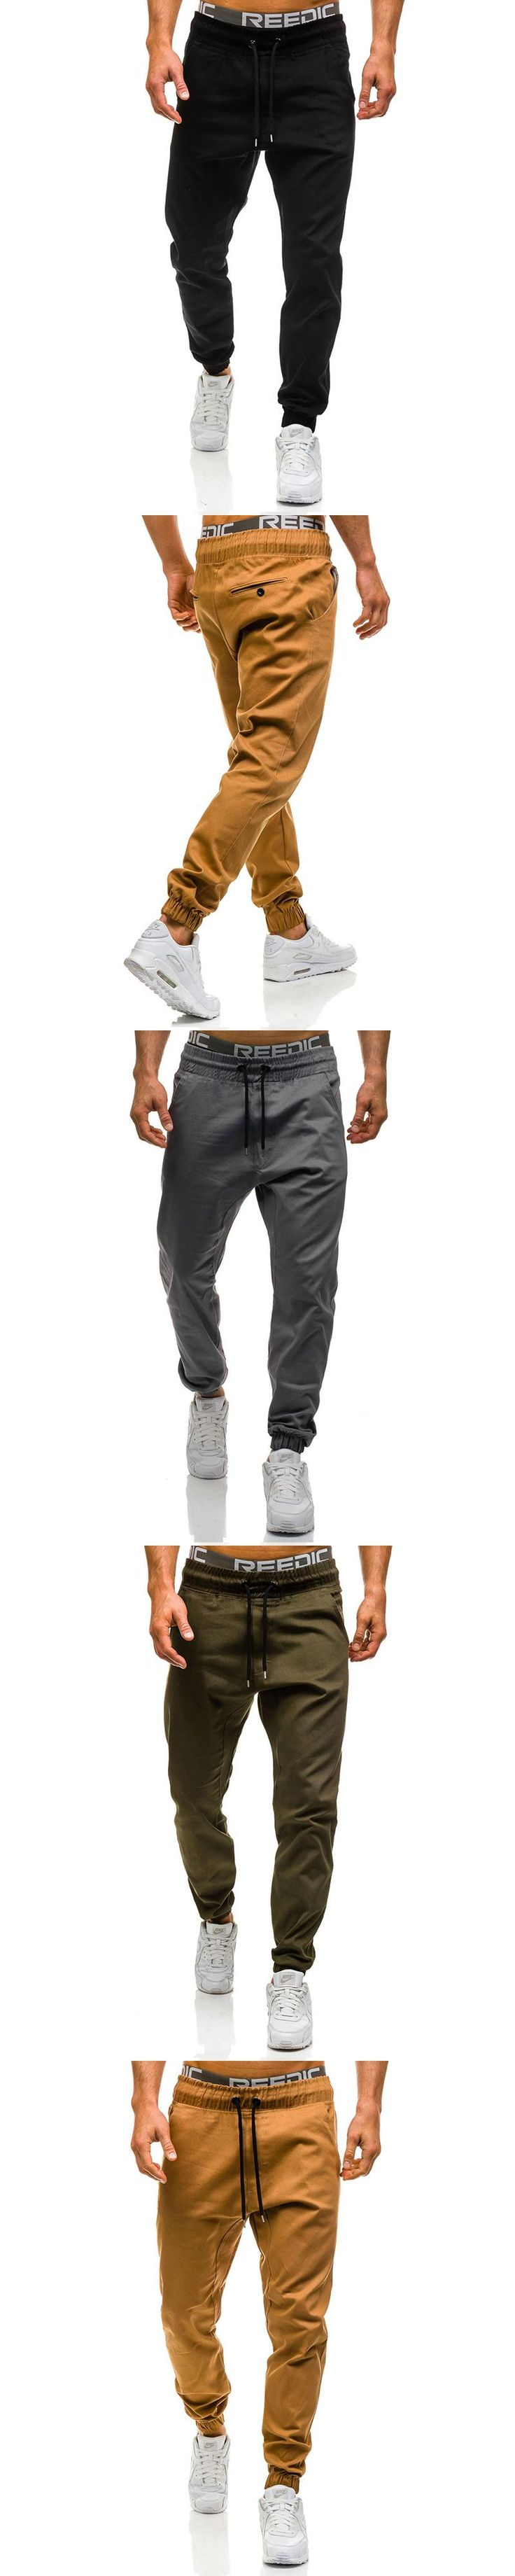 Men Joggers 2017 New Casual Pants Men Brand Clothing High Quality Spring Long Khaki Pants Elastic Male Trousers Mens Joggers 3XL